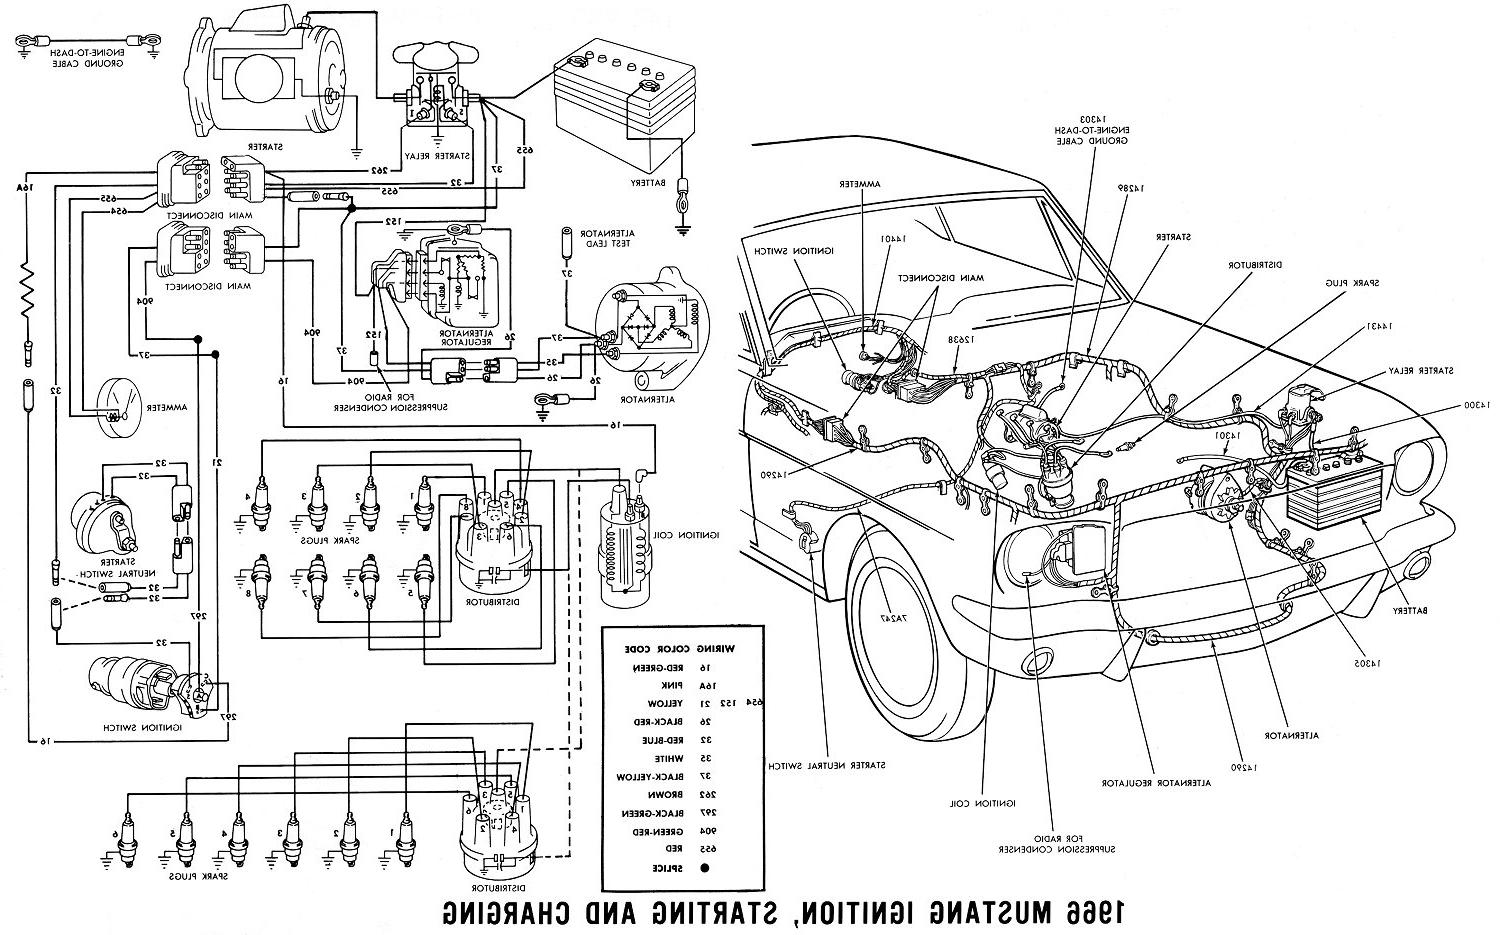 Rw Dodge Coronet Wiring Harness Free Diagram